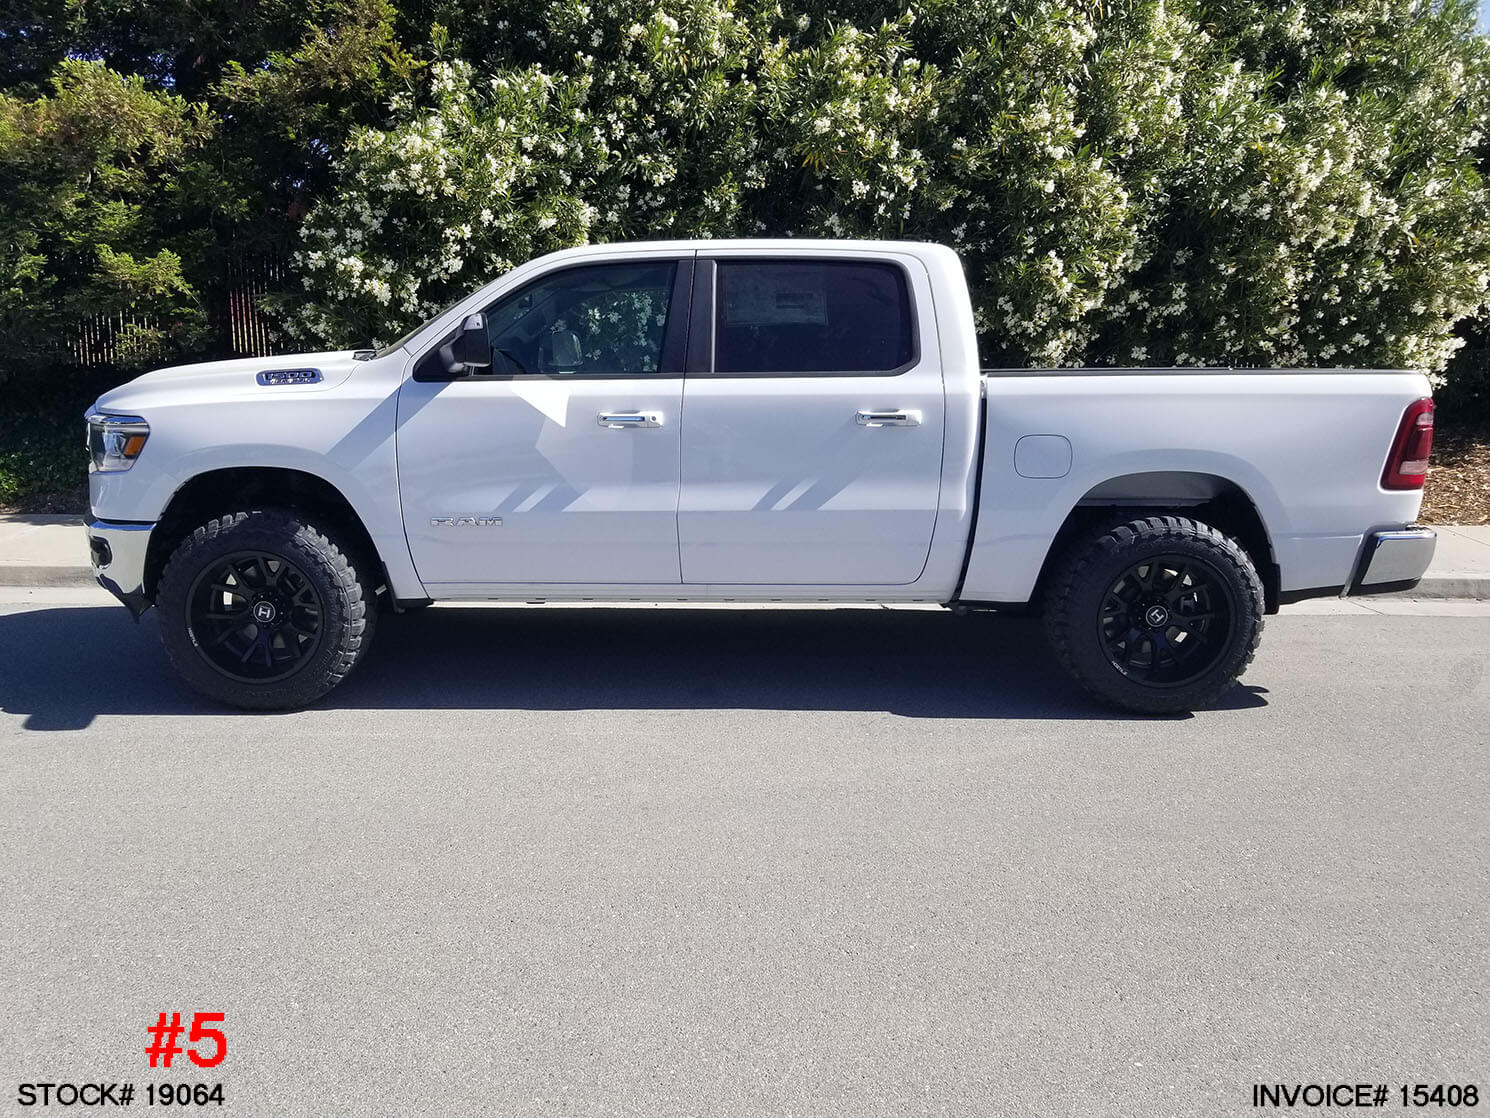 2019 Dodge Ram 1500 Crew Cab 19064 Truck And Suv Parts